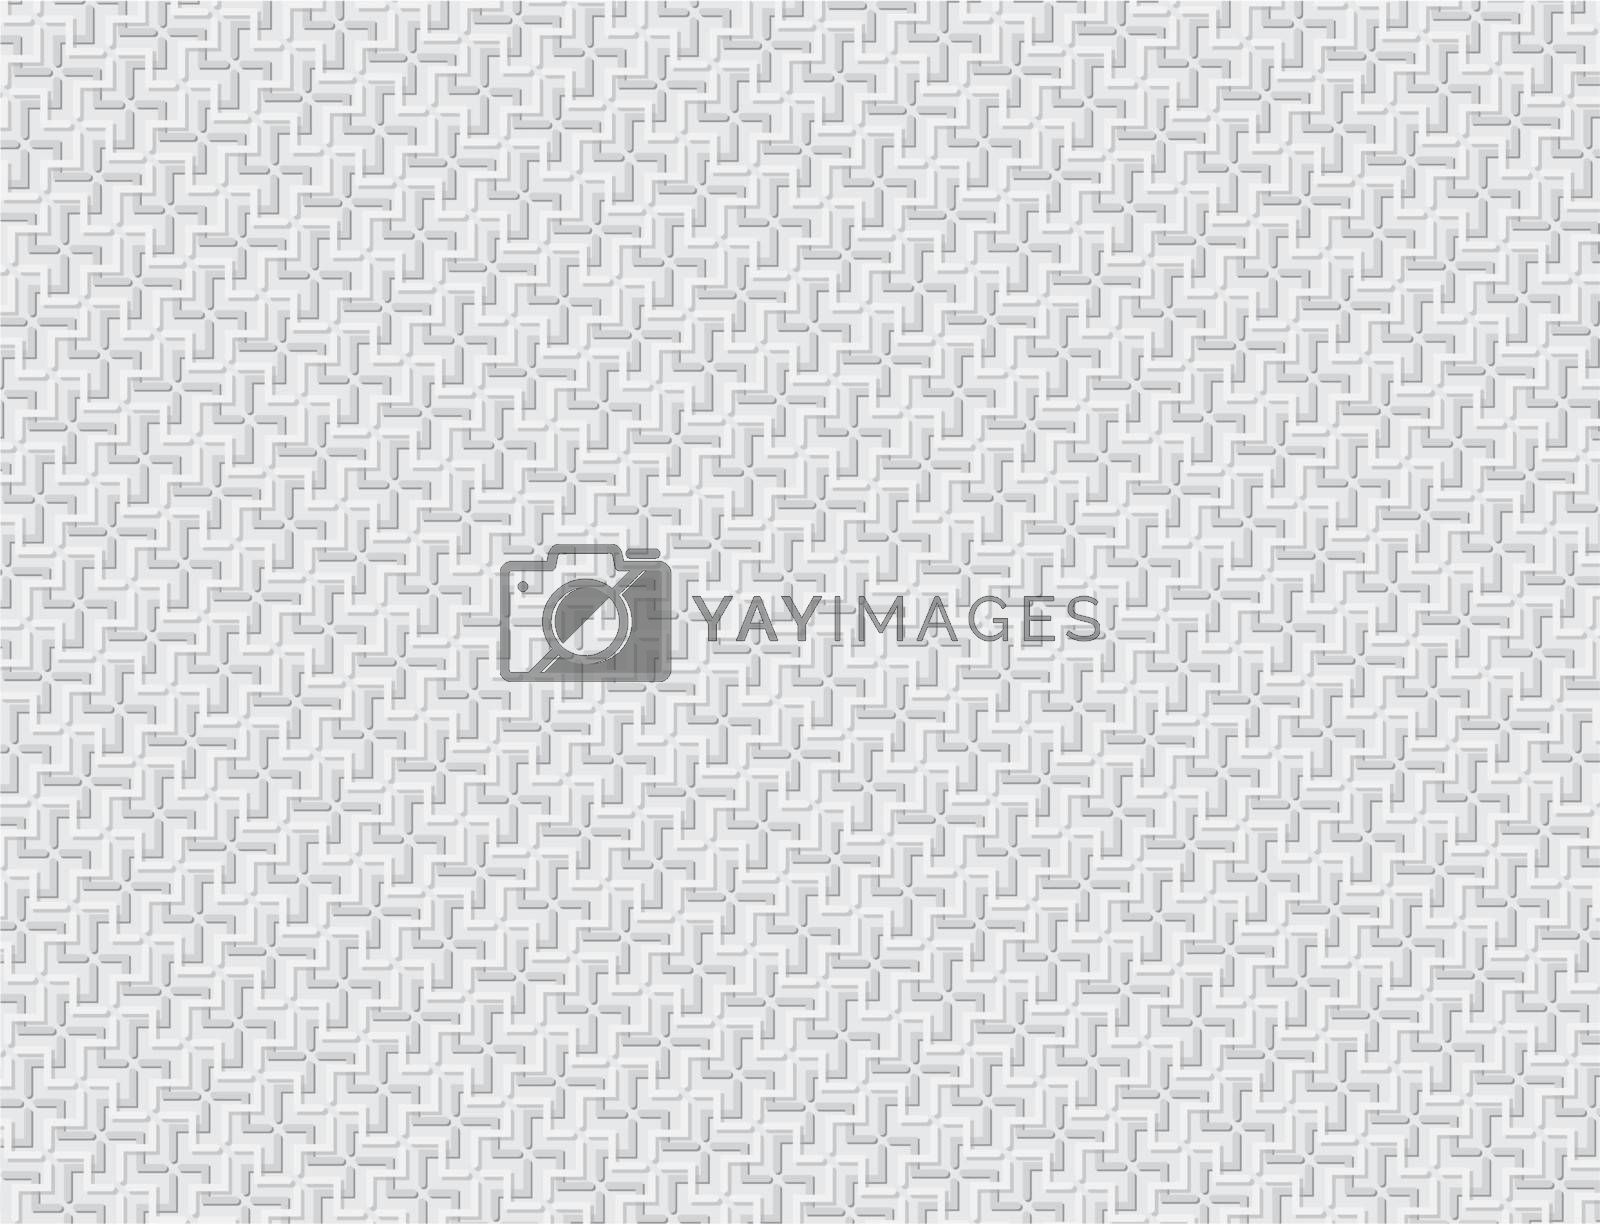 Monochrome abstract vector background - gray crosses